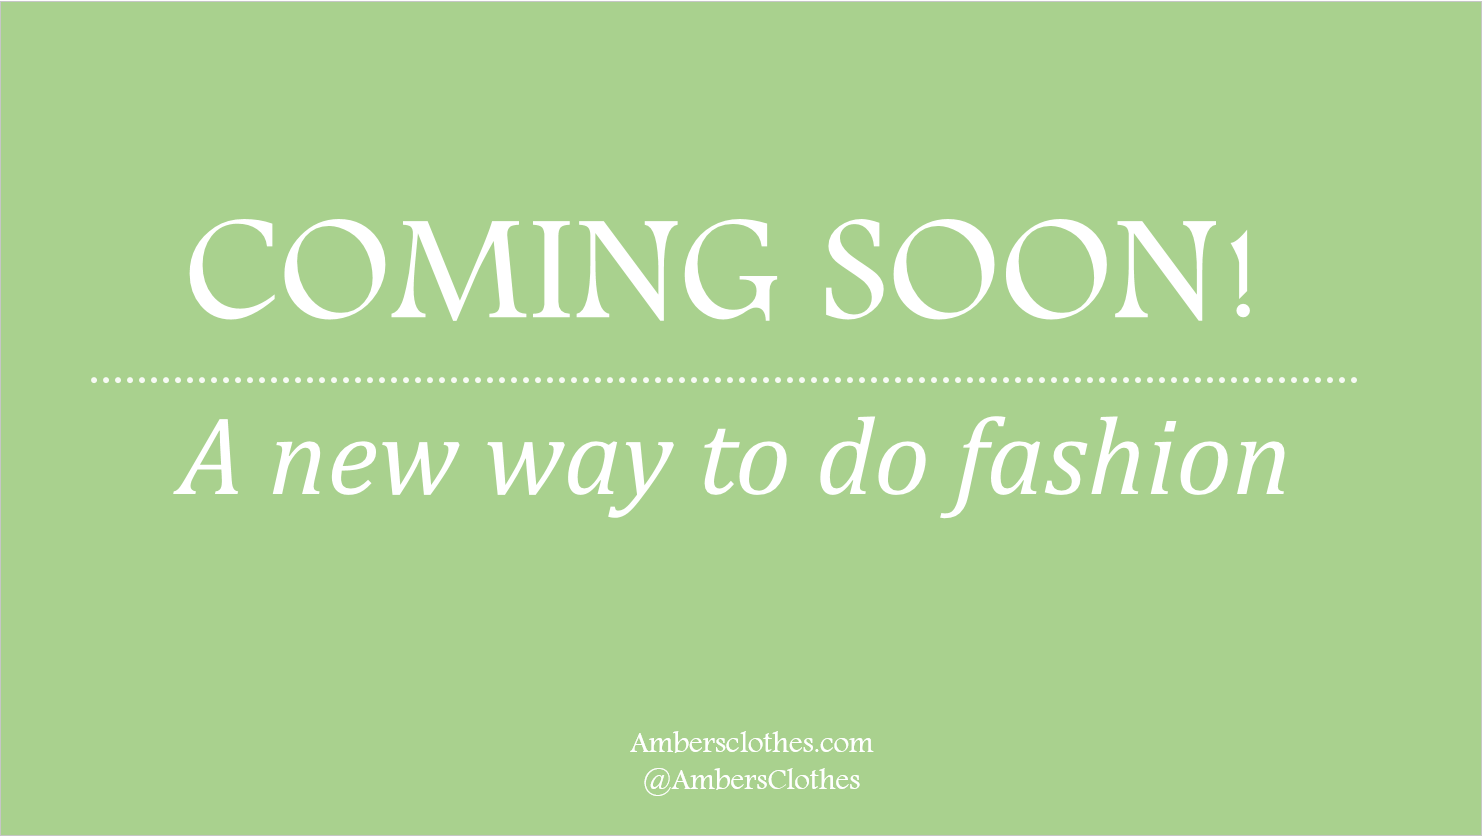 We're launching soon, keep your ears open for updates!